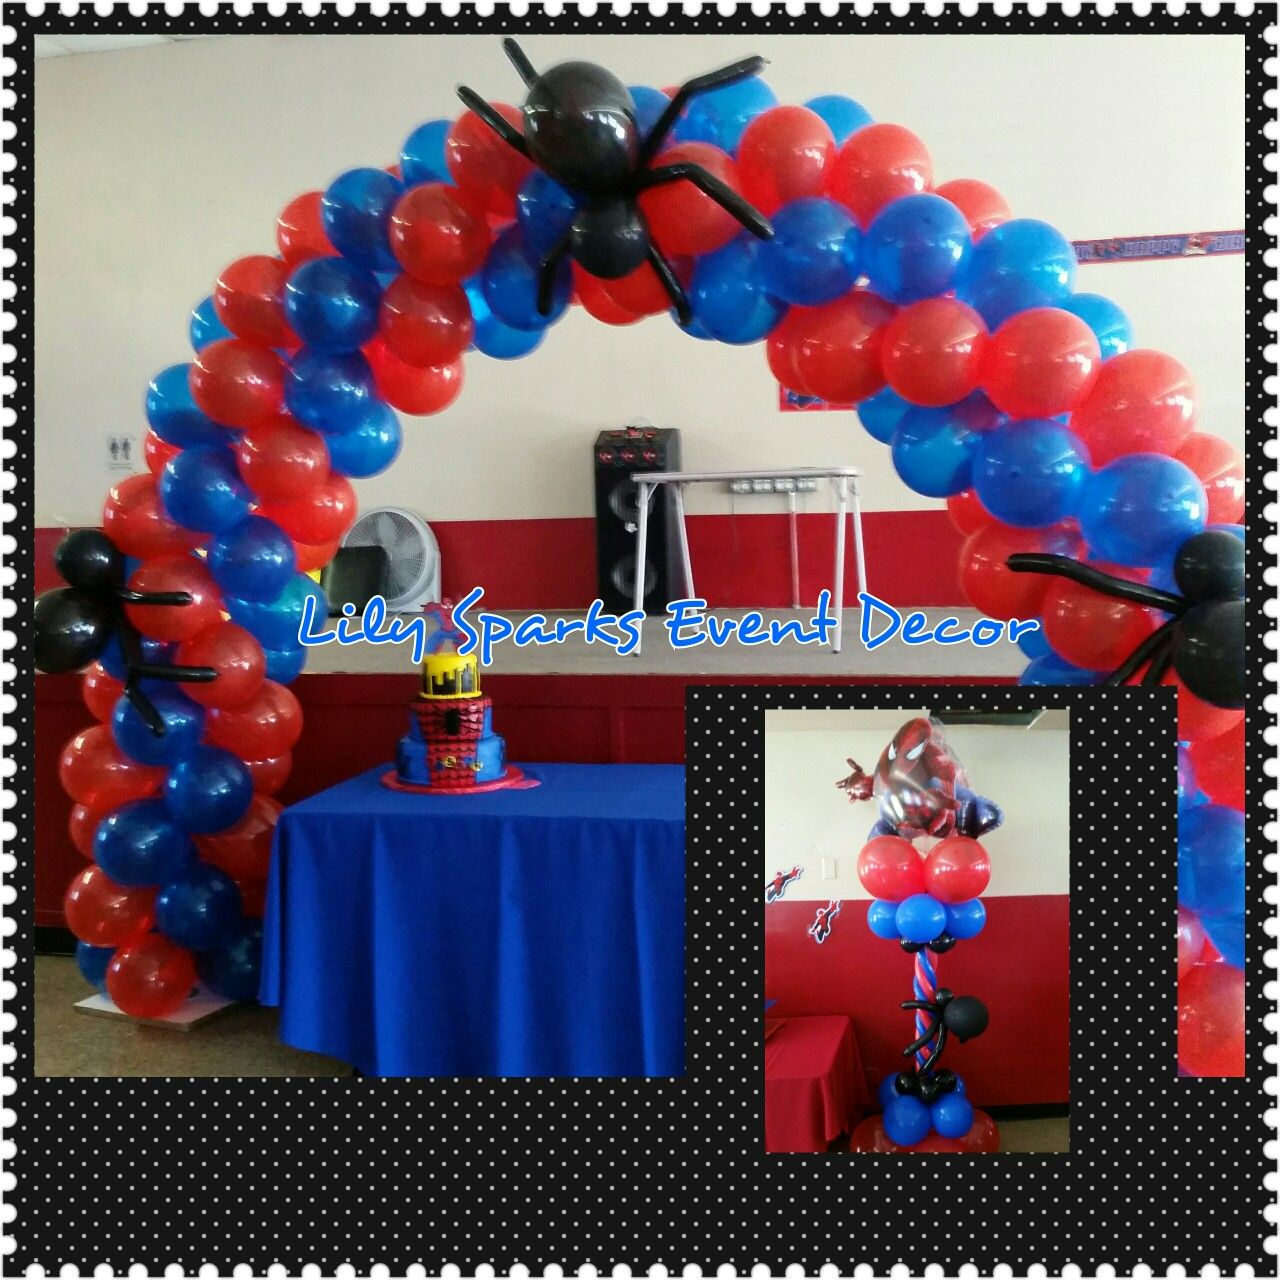 Spiderman balloon decor globoflexia pinterest globo - Decoracion de aranas ...